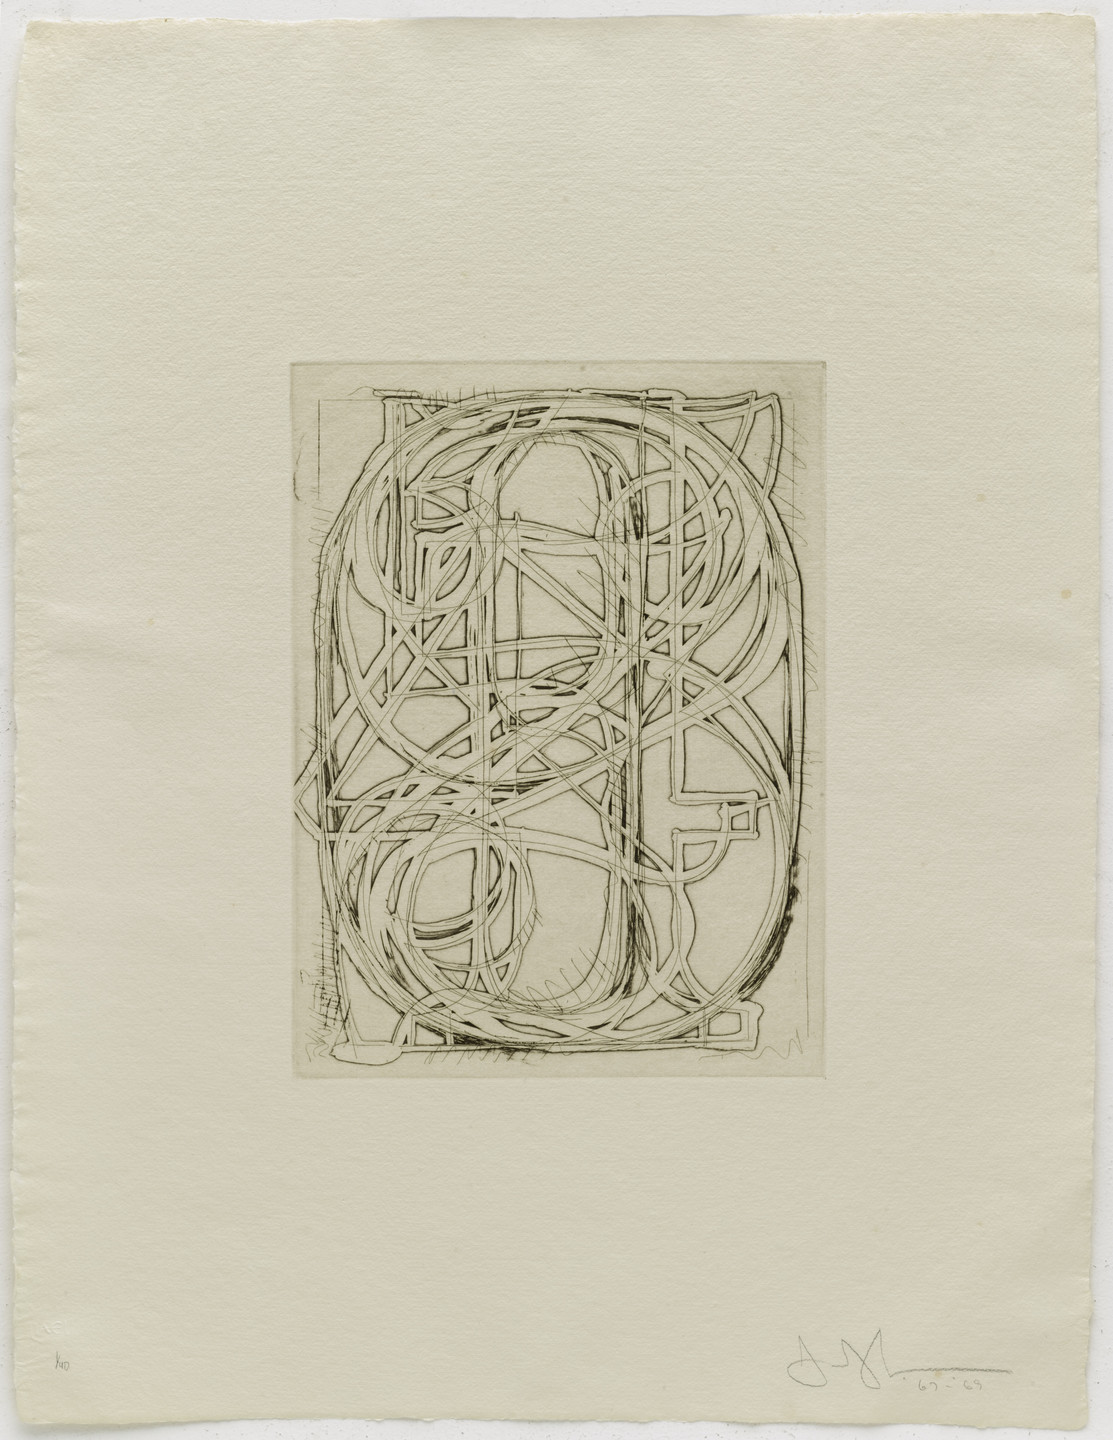 Jasper Johns. Numbers from 1st Etchings-2nd State. 1967–69, published 1969